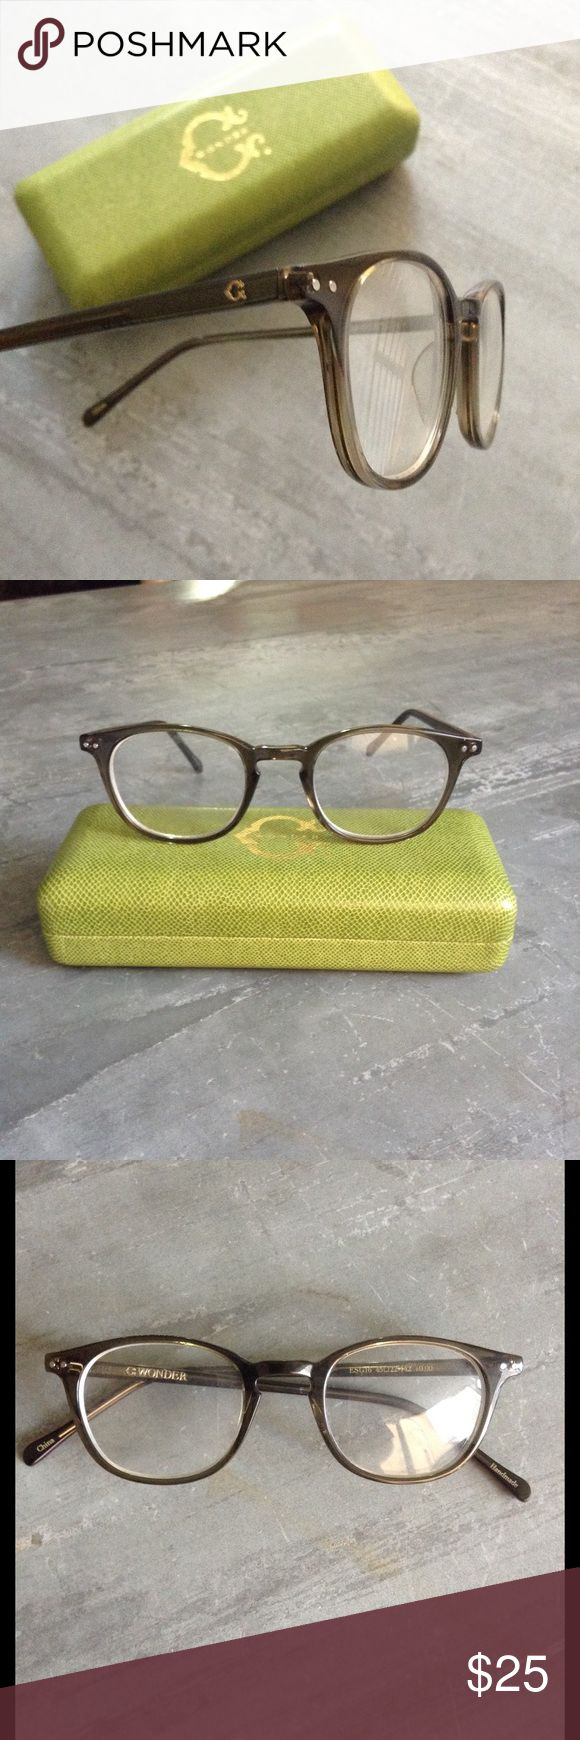 C Wonder non prescription glasses Really cute C Wonder non prescription glasses.  Really cute on and look totally natural and real.  Great for that fashion look or for a custom! They are in great condition, only worn 7-10 times and come with the original case! C Wonder Accessories Glasses